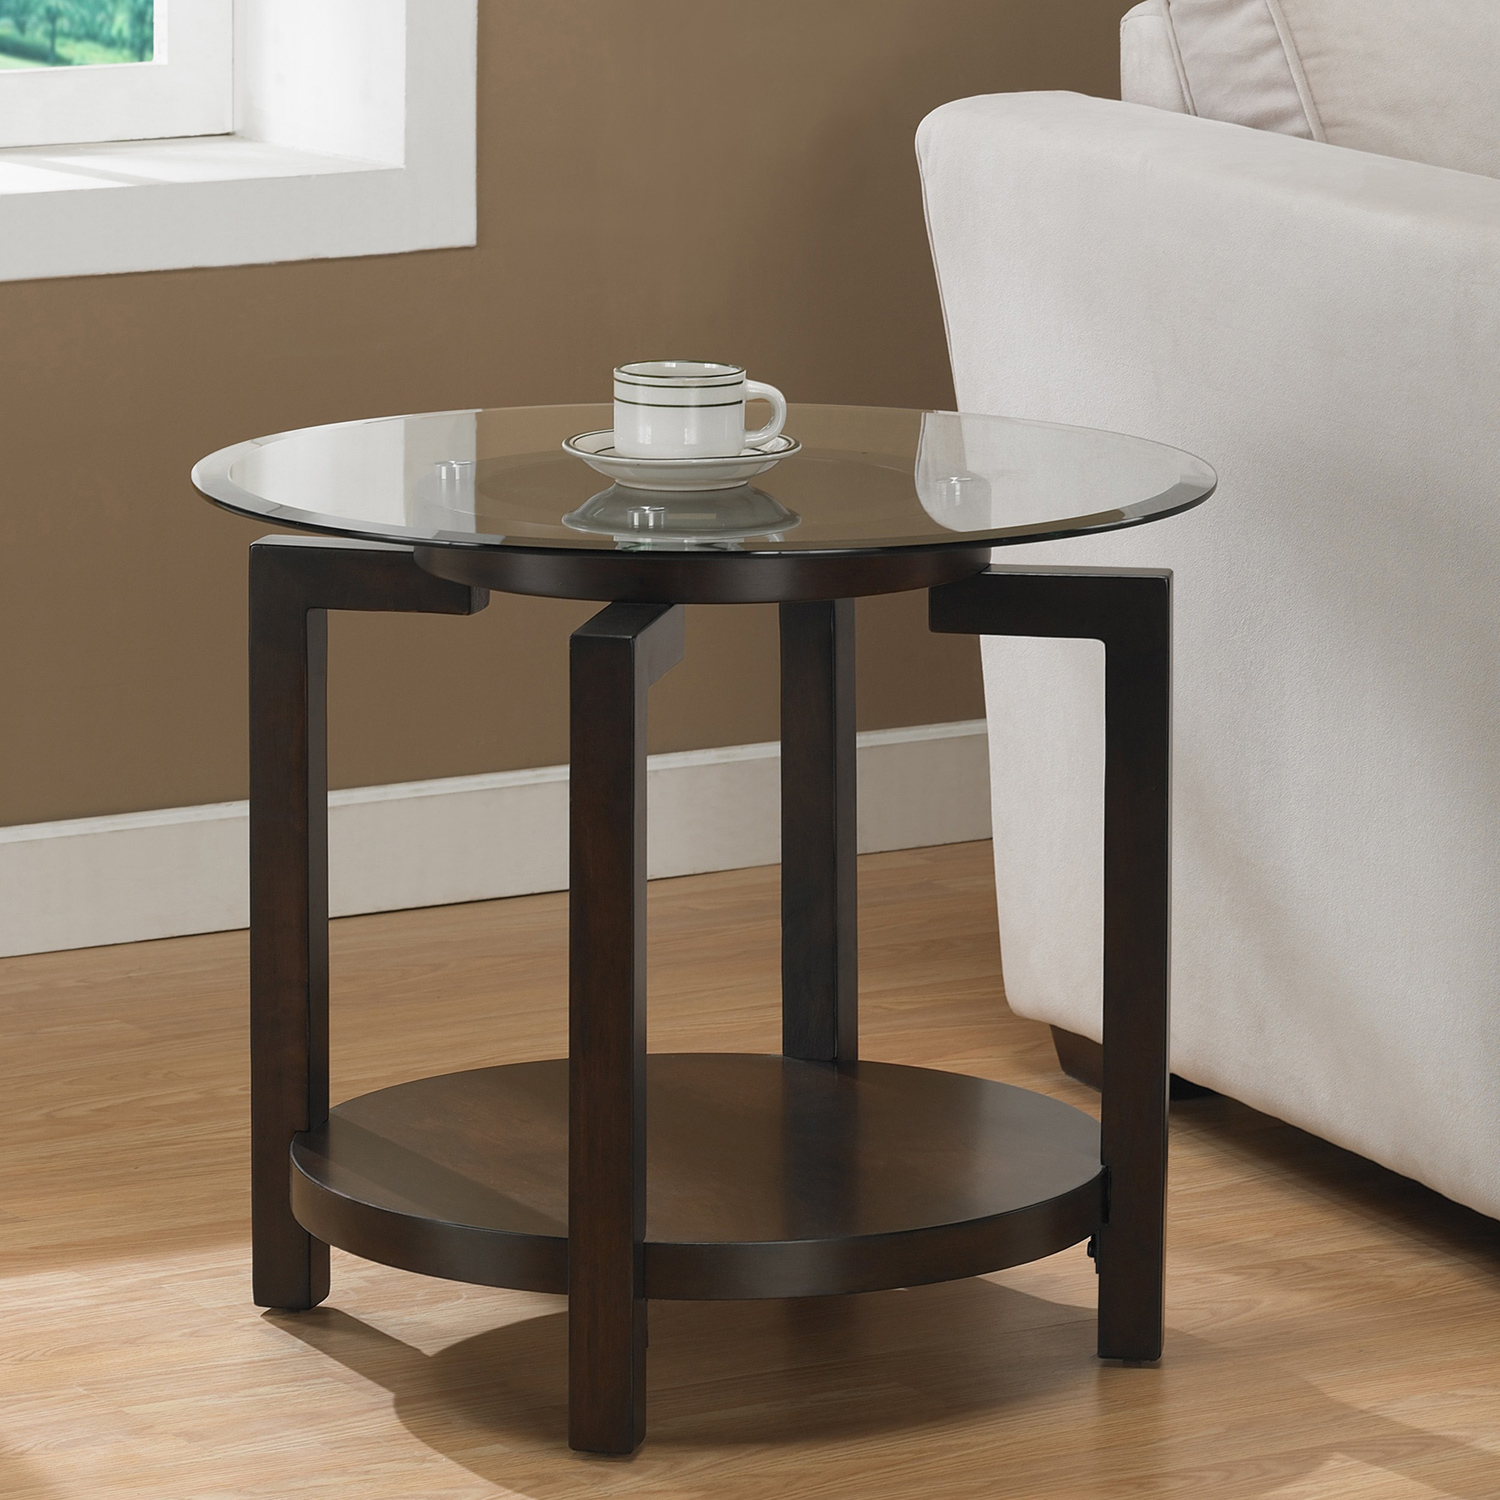 espresso round end tables home design ideas table glass top tipton accent perfectly pedestal pier one shower curtains tall narrow coffee drinking sets aluminum umbrella small apt